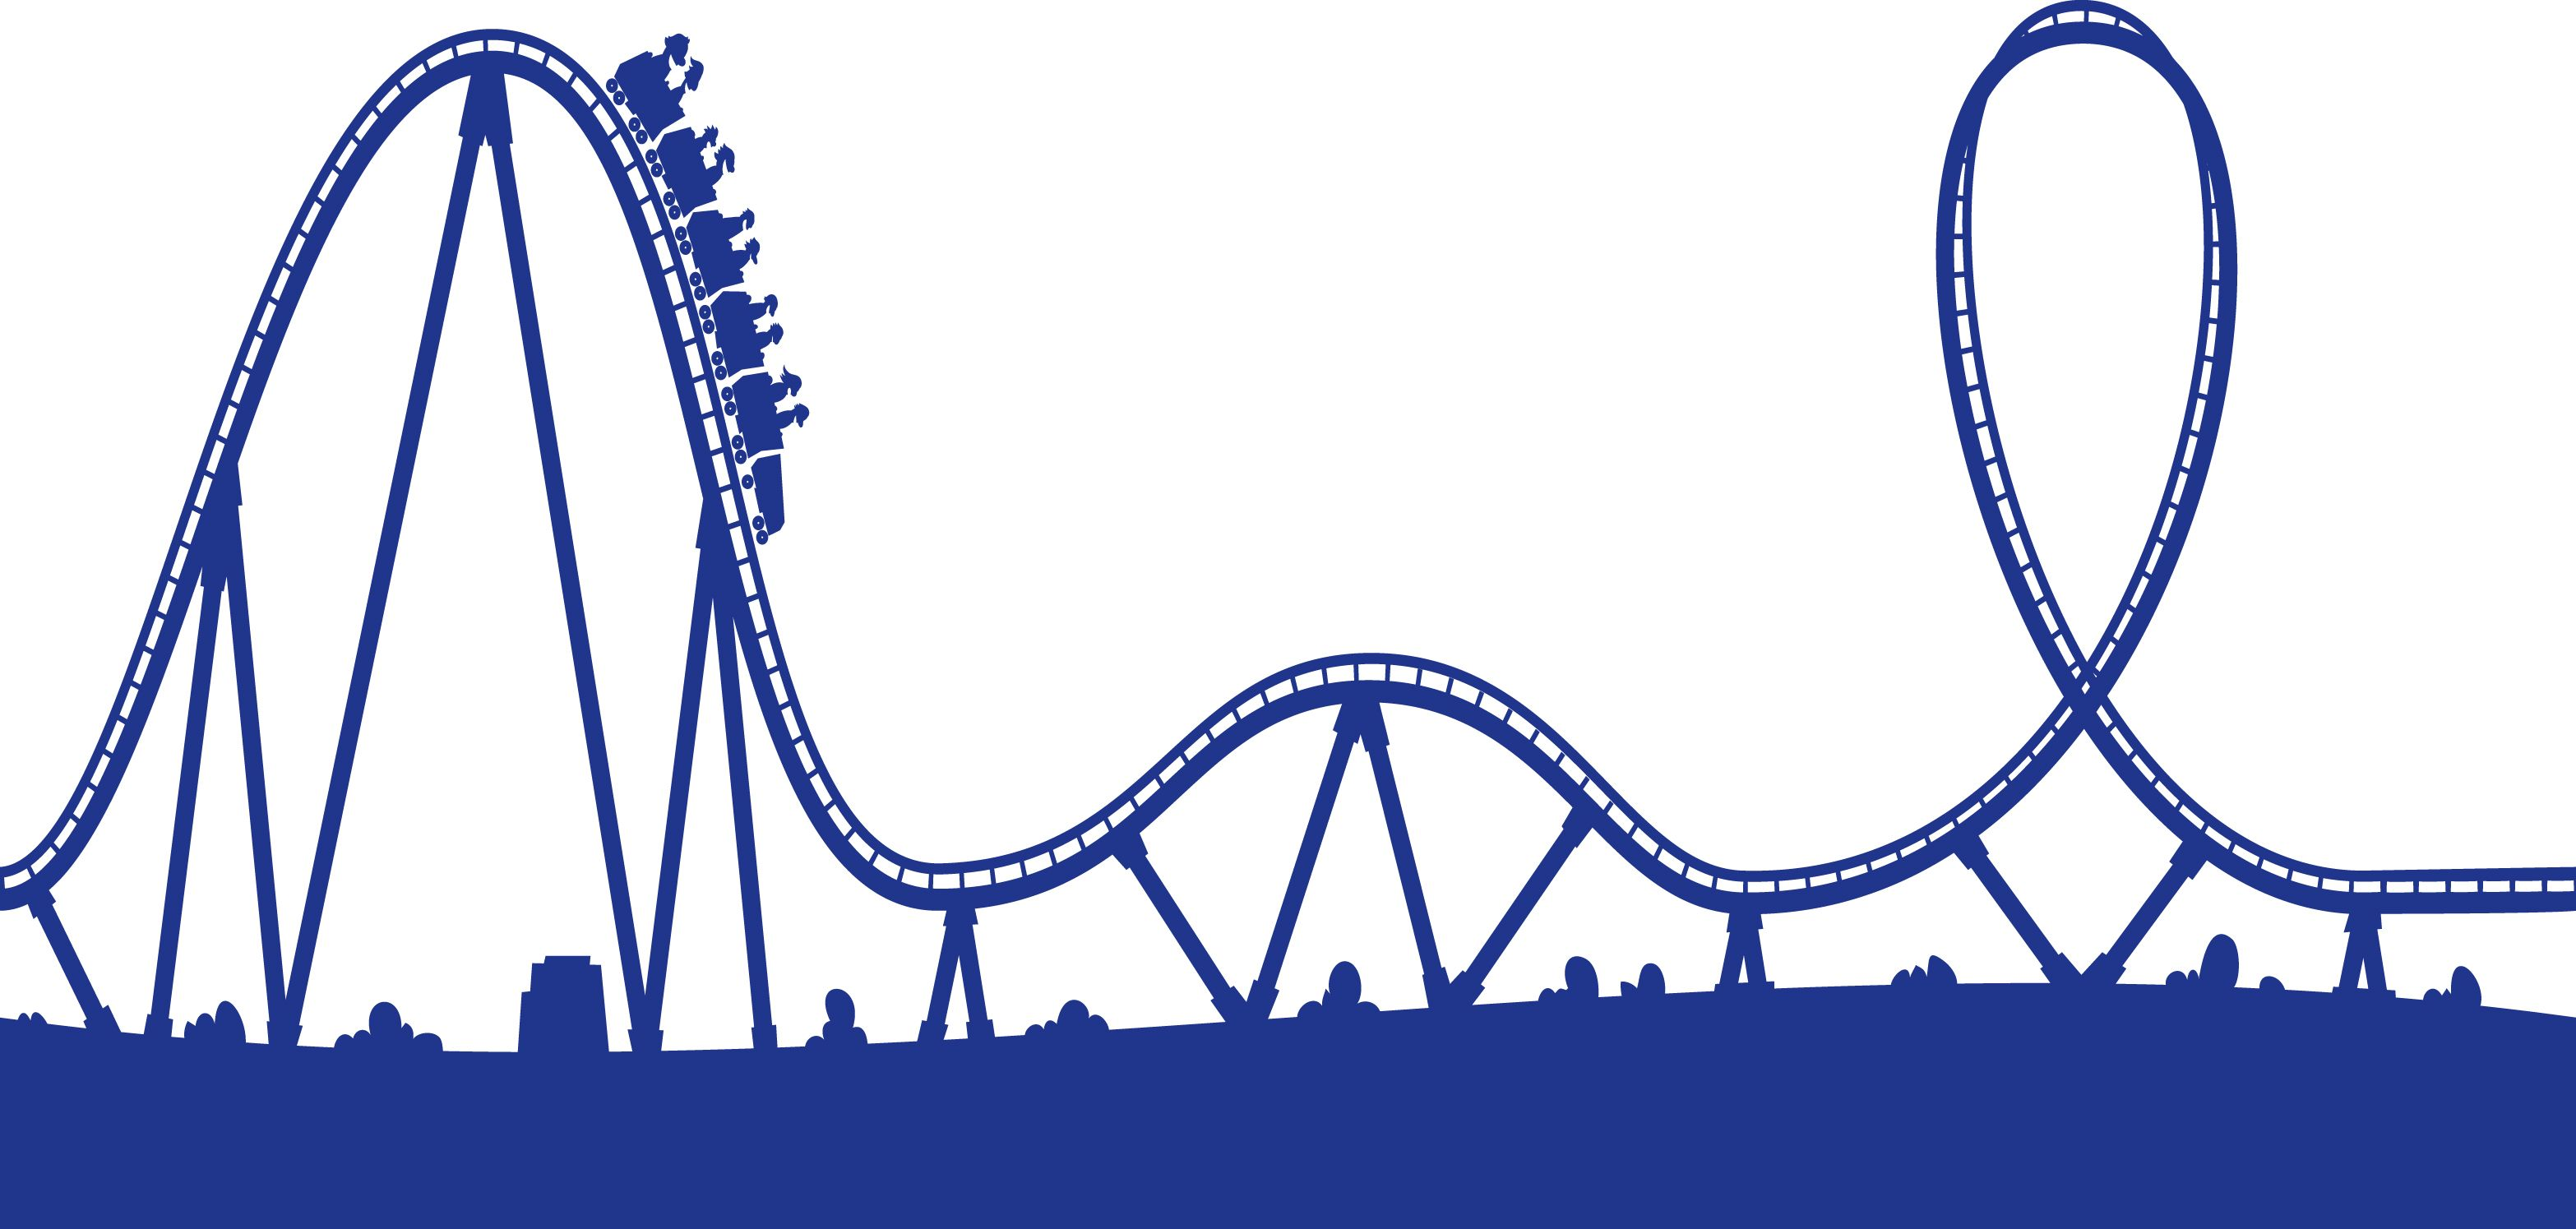 jpg transparent stock Rollercoaster clipart. The cryptocurrency roller coster.